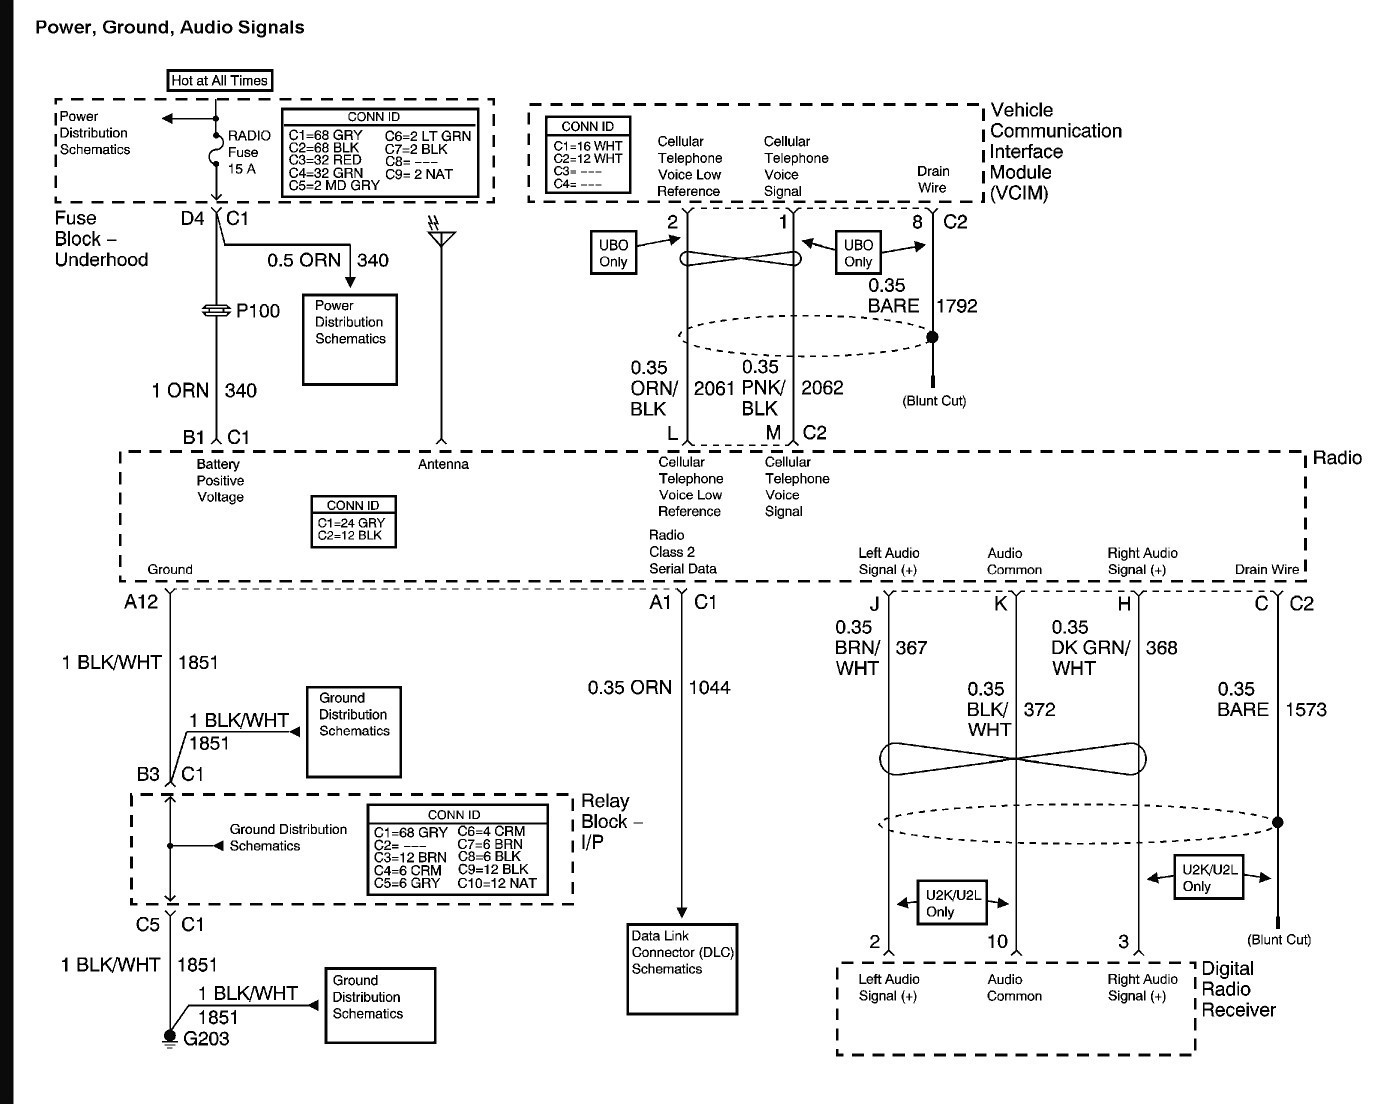 Stereo Wiring Diagram For 2002 Chevy Impala Toyota Highlander V6 Engine Diagram For Wiring Diagram Schematics